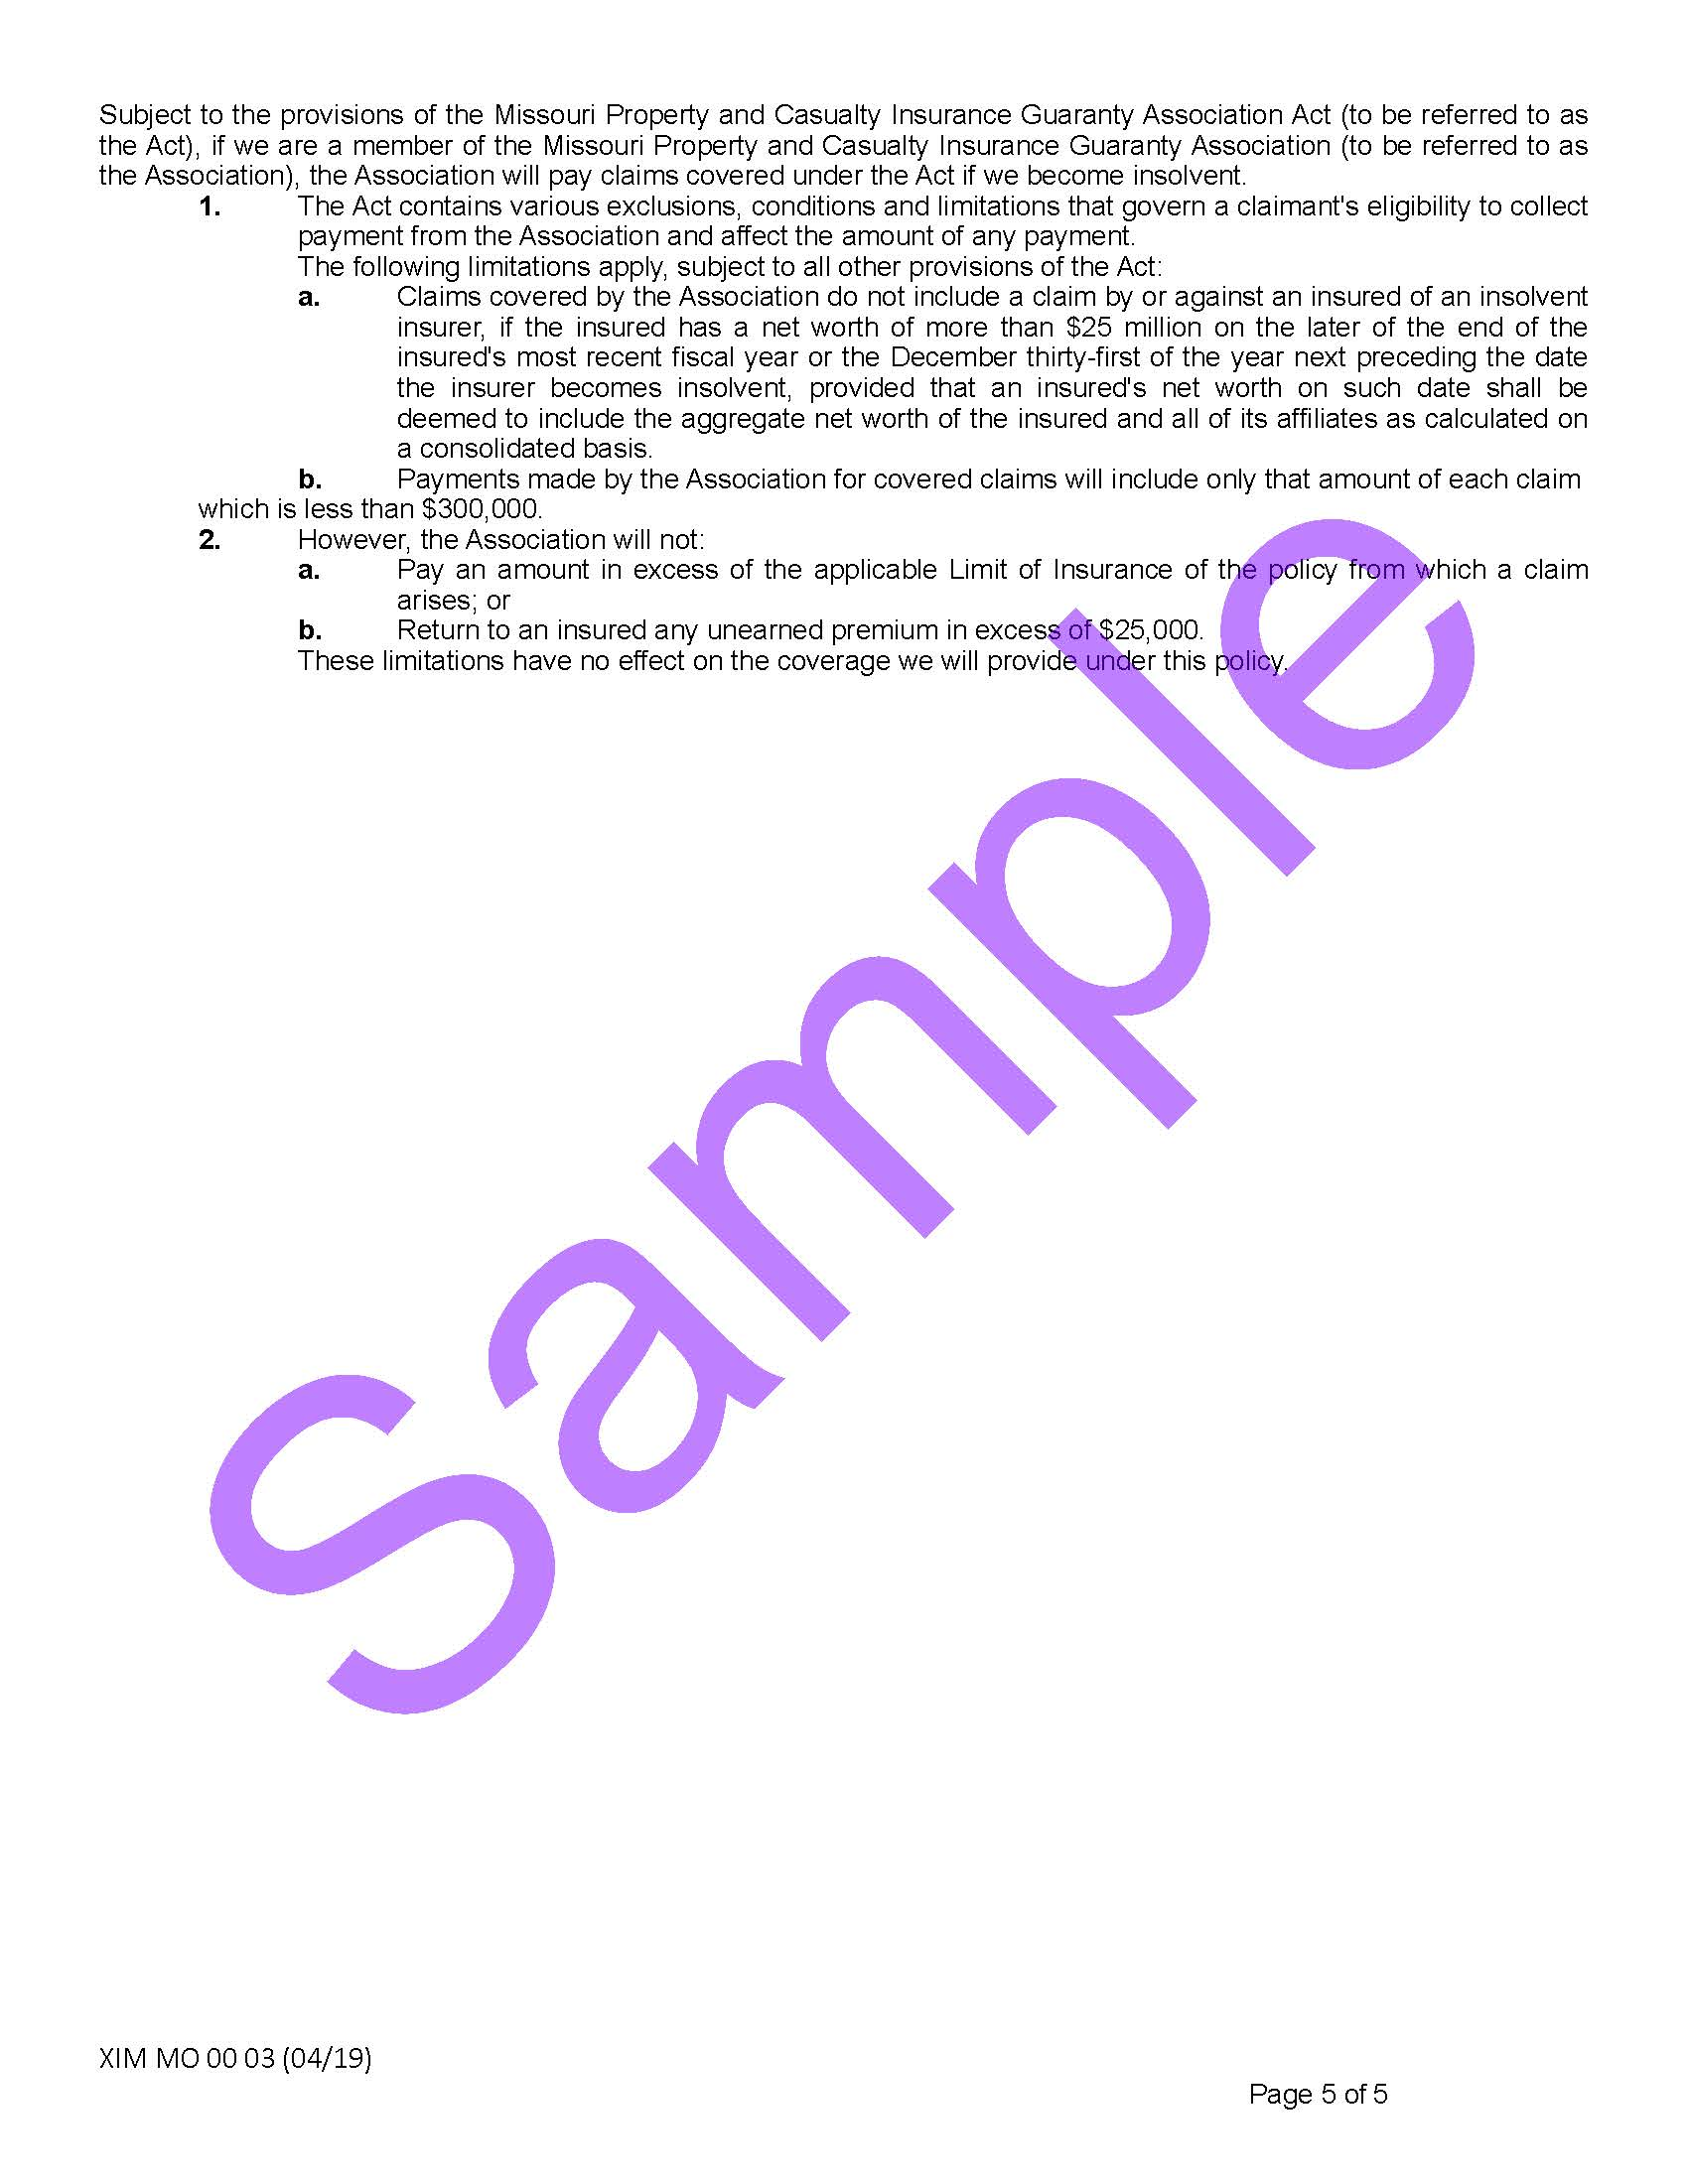 XIM MO 00 03 04 19 Missouri Certificate of InsuranceSample_Page_5.jpg